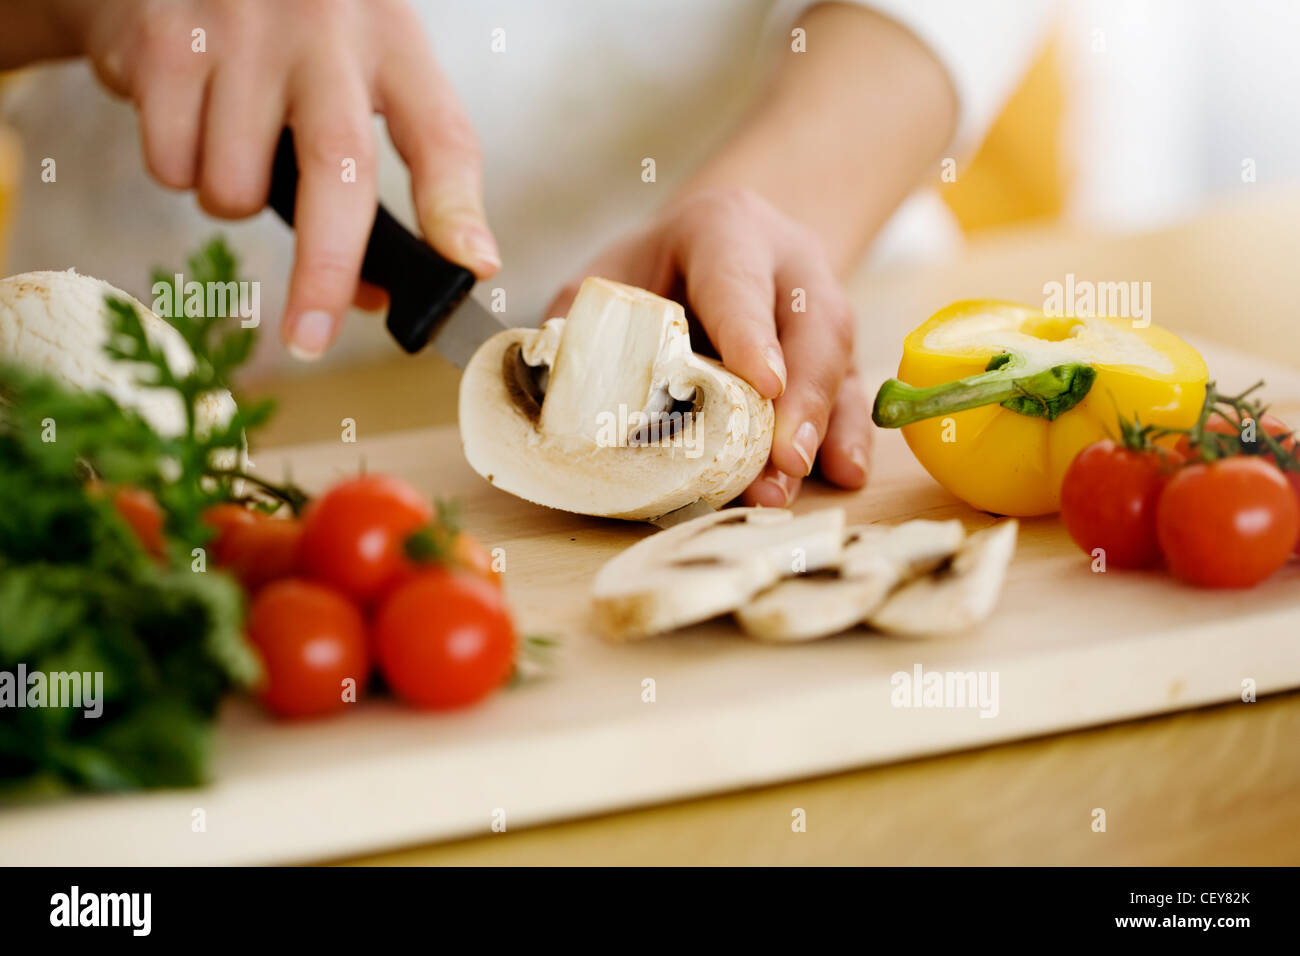 cooking - Stock Image